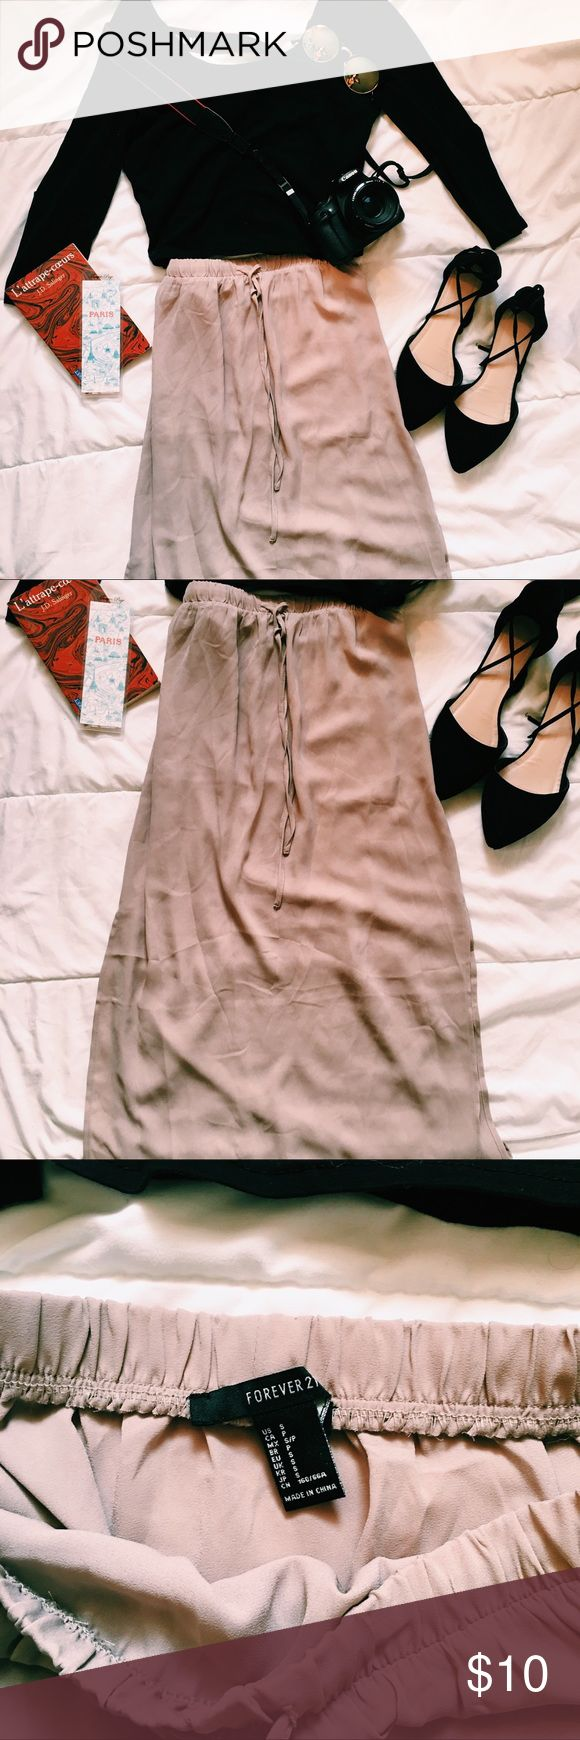 ✨ Beige Maxi Skirt ✨ NWOT! Amazing condition, slit on the sides to show a little leg 😉 Forever 21 Skirts Maxi